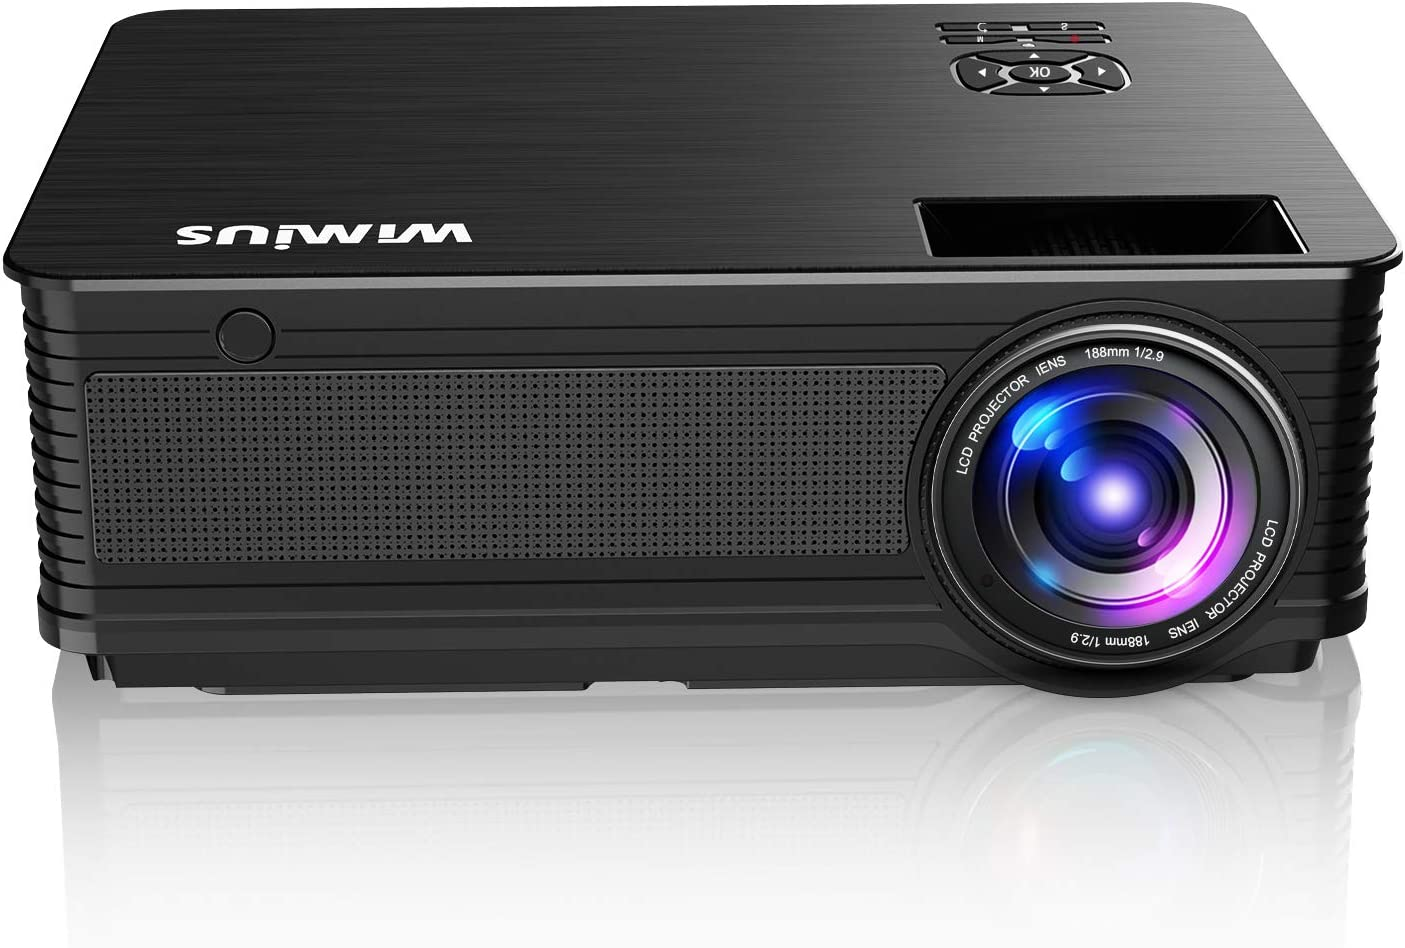 Projector, WiMiUS New P18 6500 Lumens 1080P Video Projector Support 200'' Screen Compatible with USB HDMI VGA AV for PC PS4 Fire TV Stick Chromecast Smartphones Indoor and Outdoor Projector